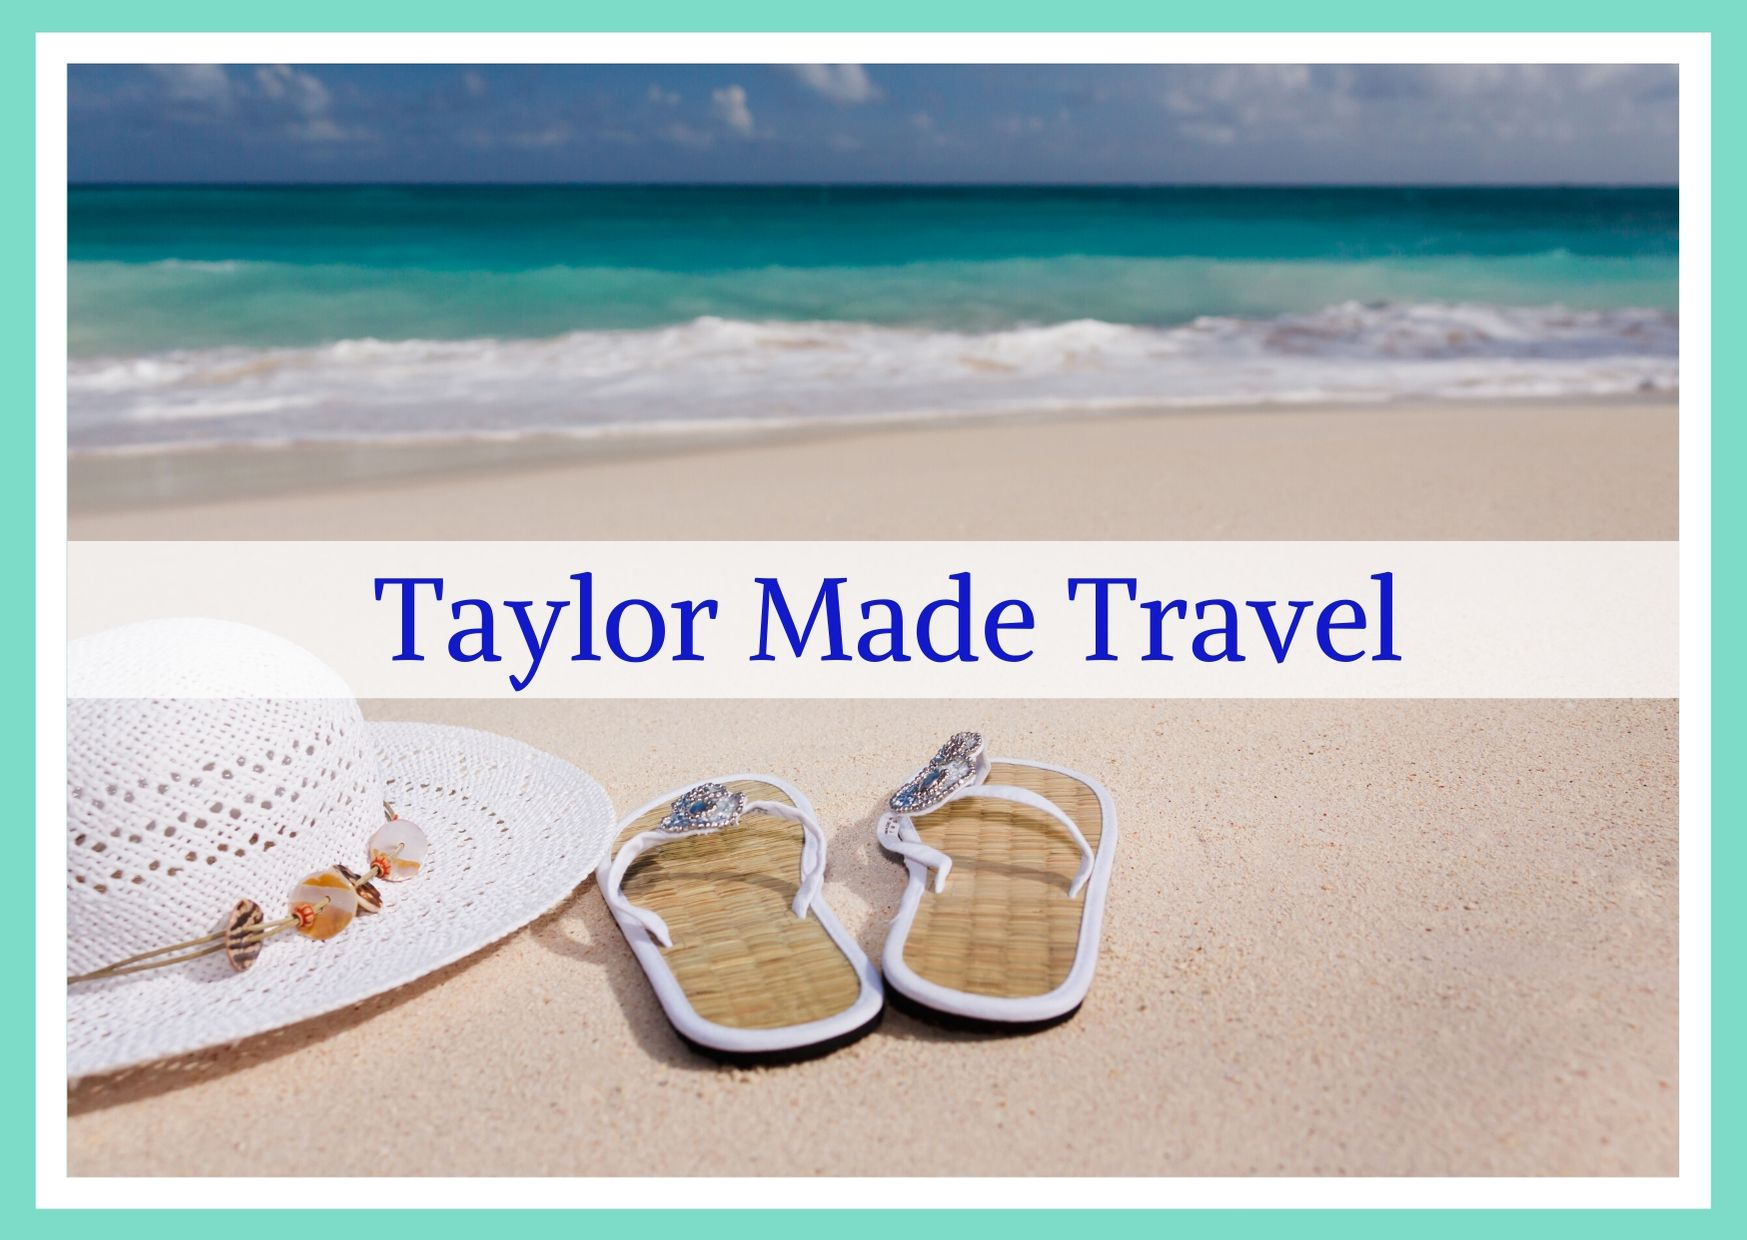 Taylor Made Travel